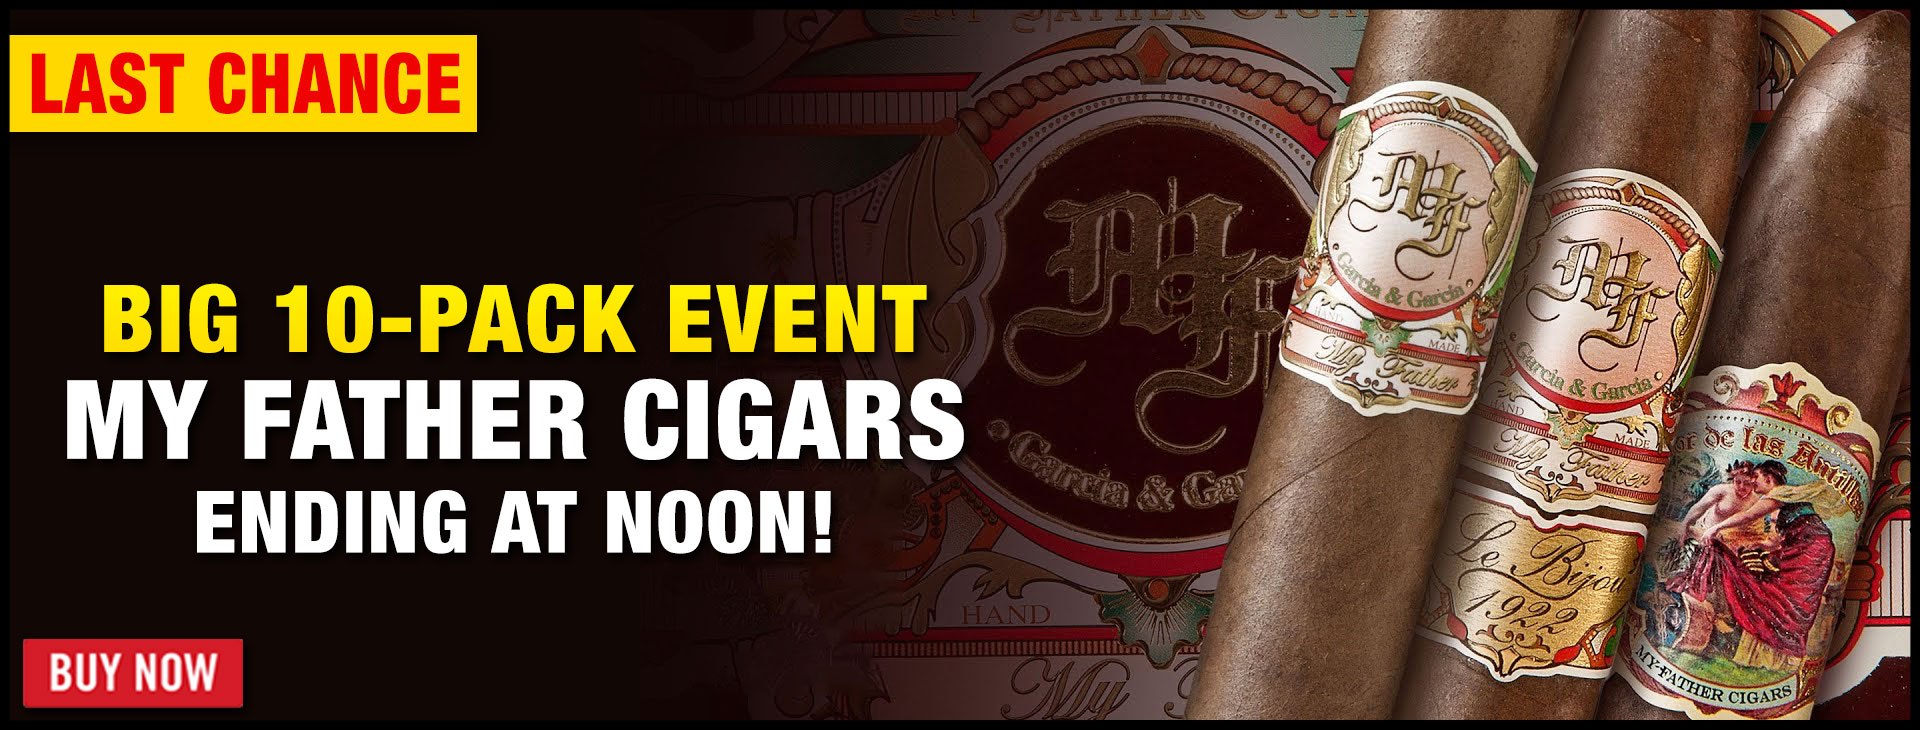 my-father-cigars-2021-5-banner.jpg